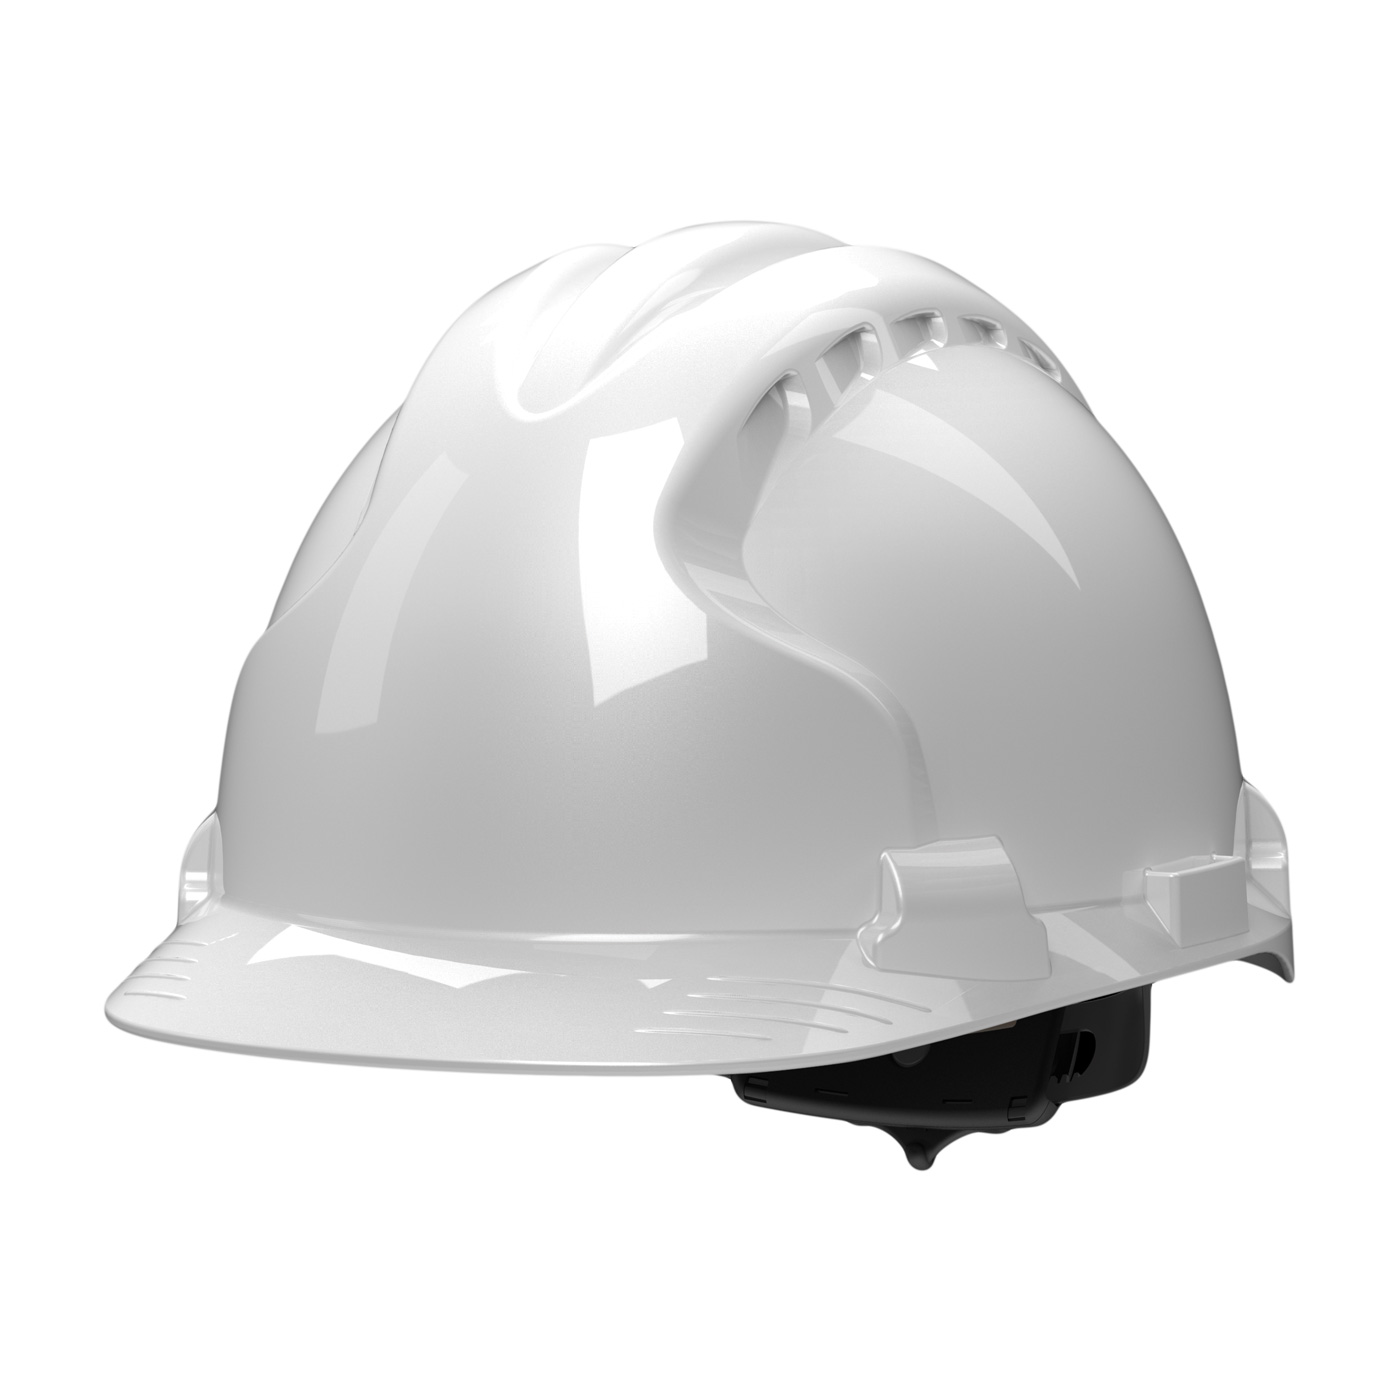 Type II Hard Hat with HDPE Shell, EPS Impact Liner, Polyester Suspension and Wheel Ratchet Adjustment, White, OS